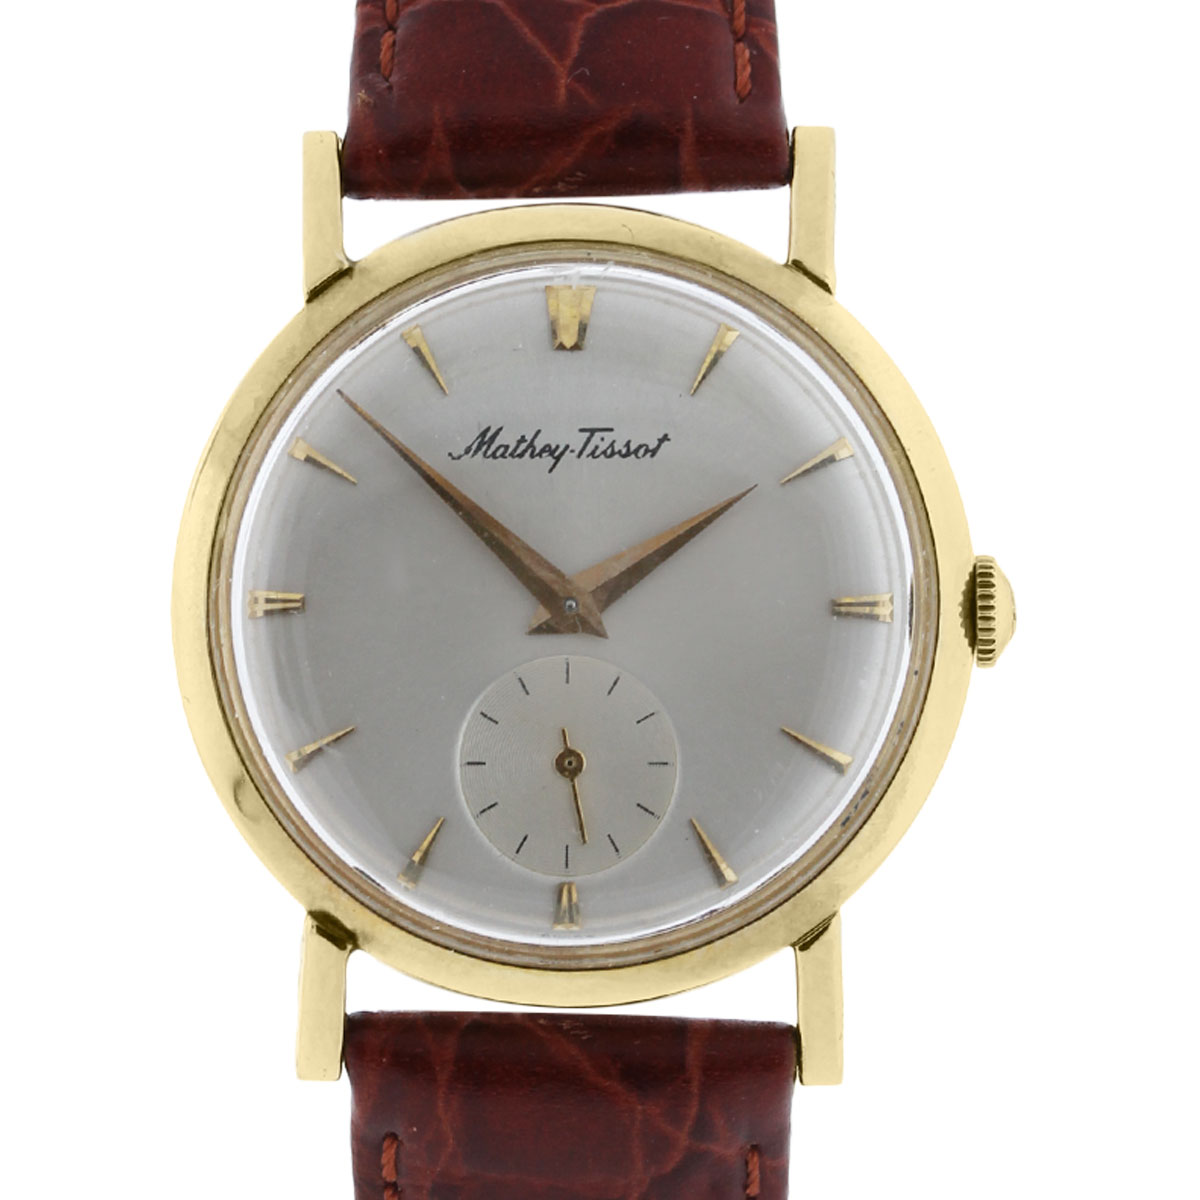 Mathey Tissot 14k Yellow Gold on Leather Vintage Watch